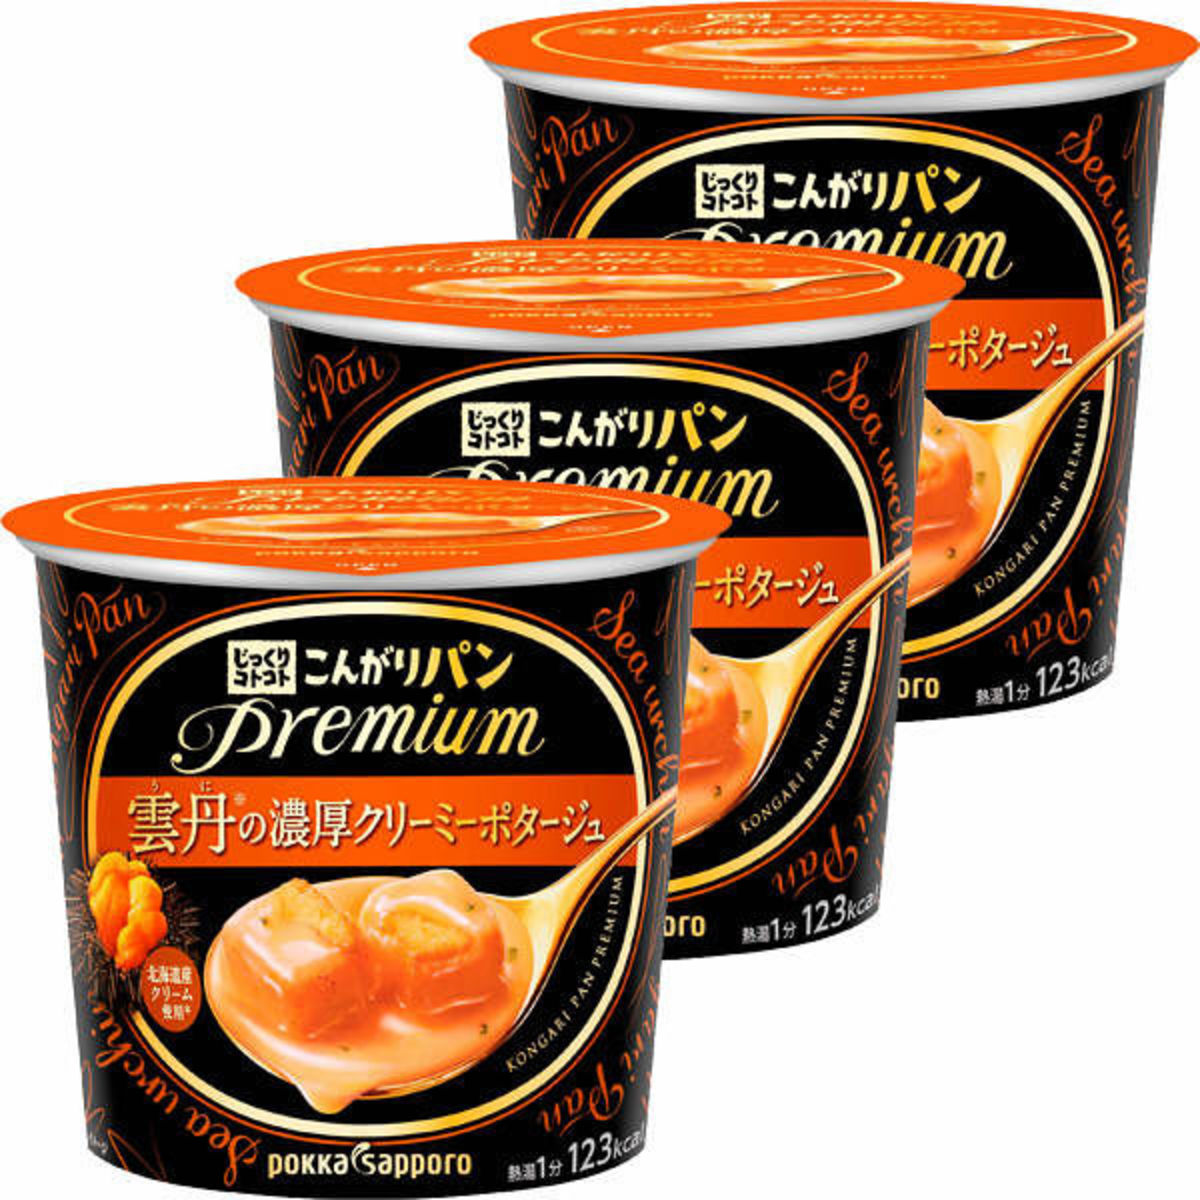 Japan Premium Creamy Urchin Cup (with Toasted Bread) x 3pcs